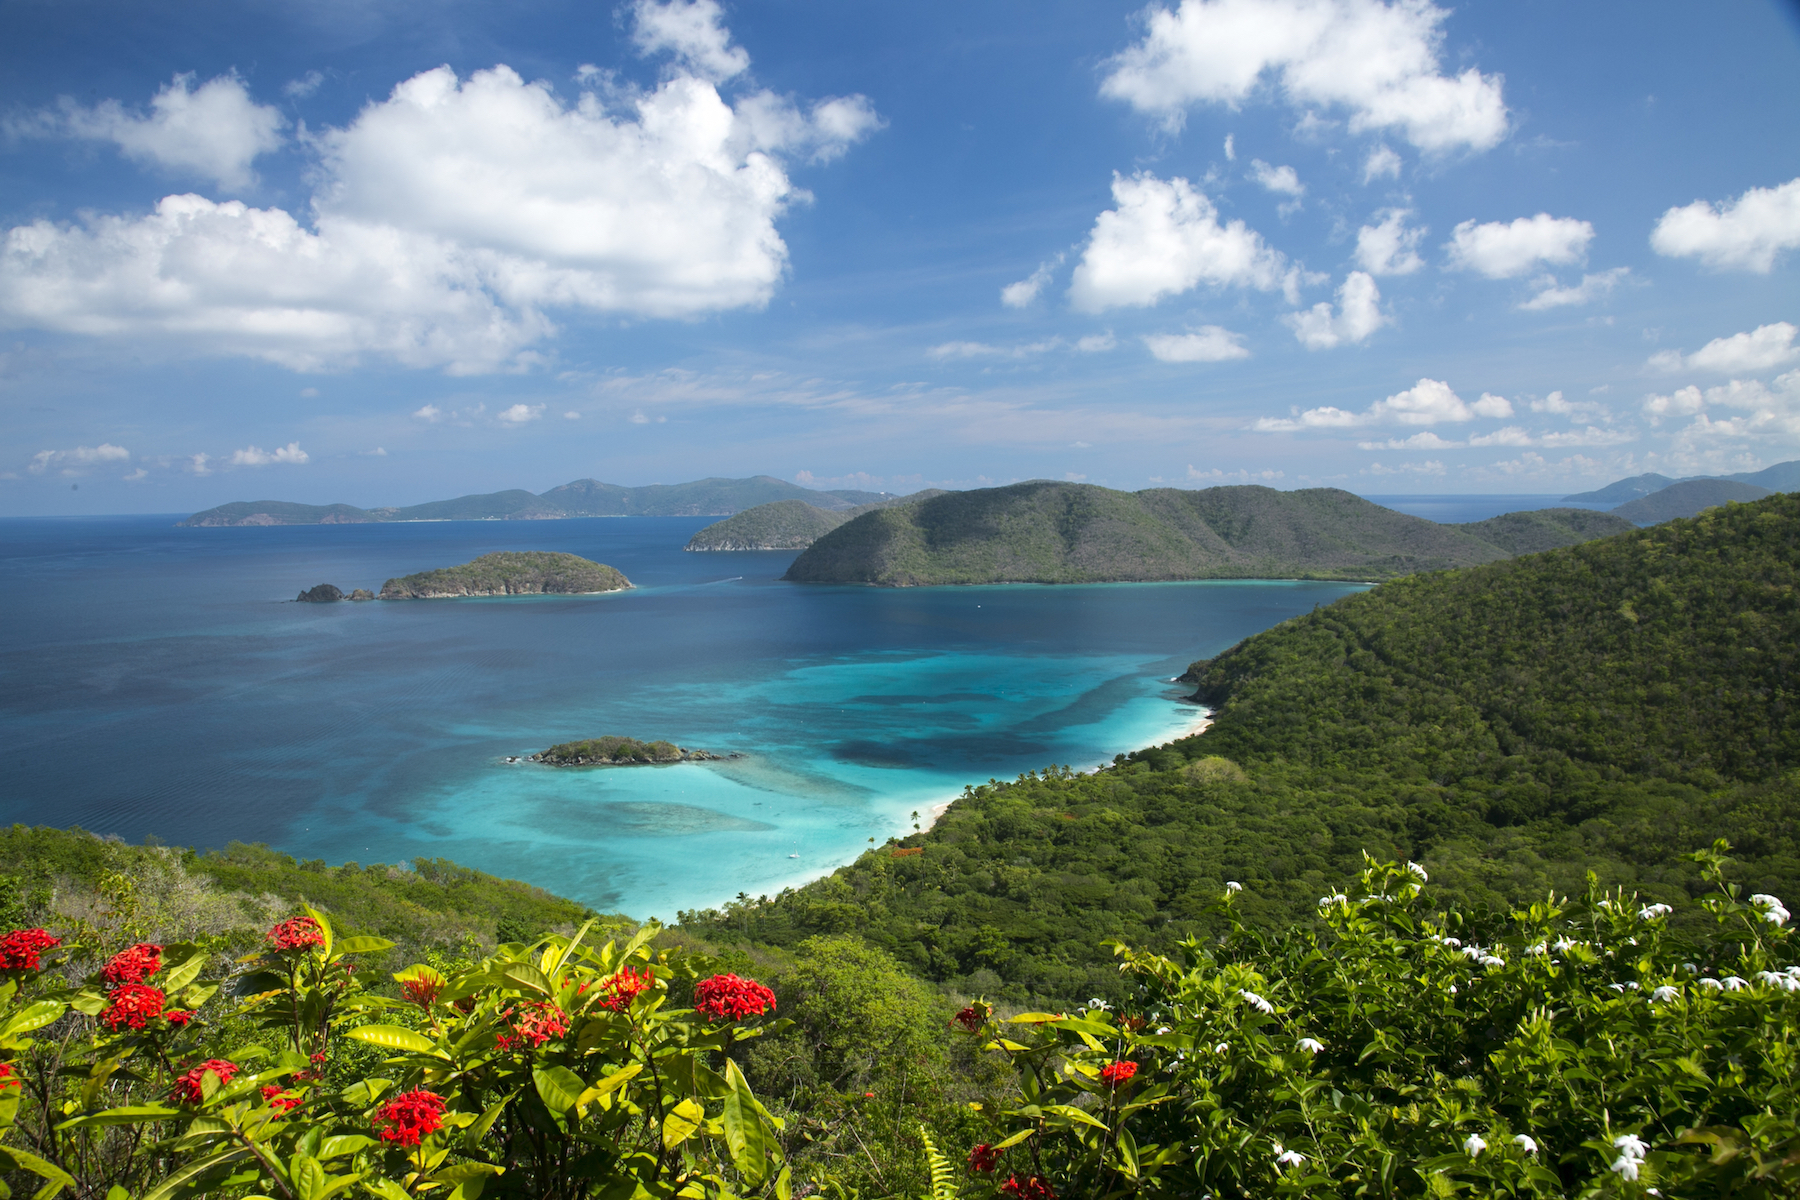 Single Family Home for Sale at Estate Catherineberg 3-13 & 3-14 Estate Catherineberg St John, Virgin Islands 00830 United States Virgin Islands